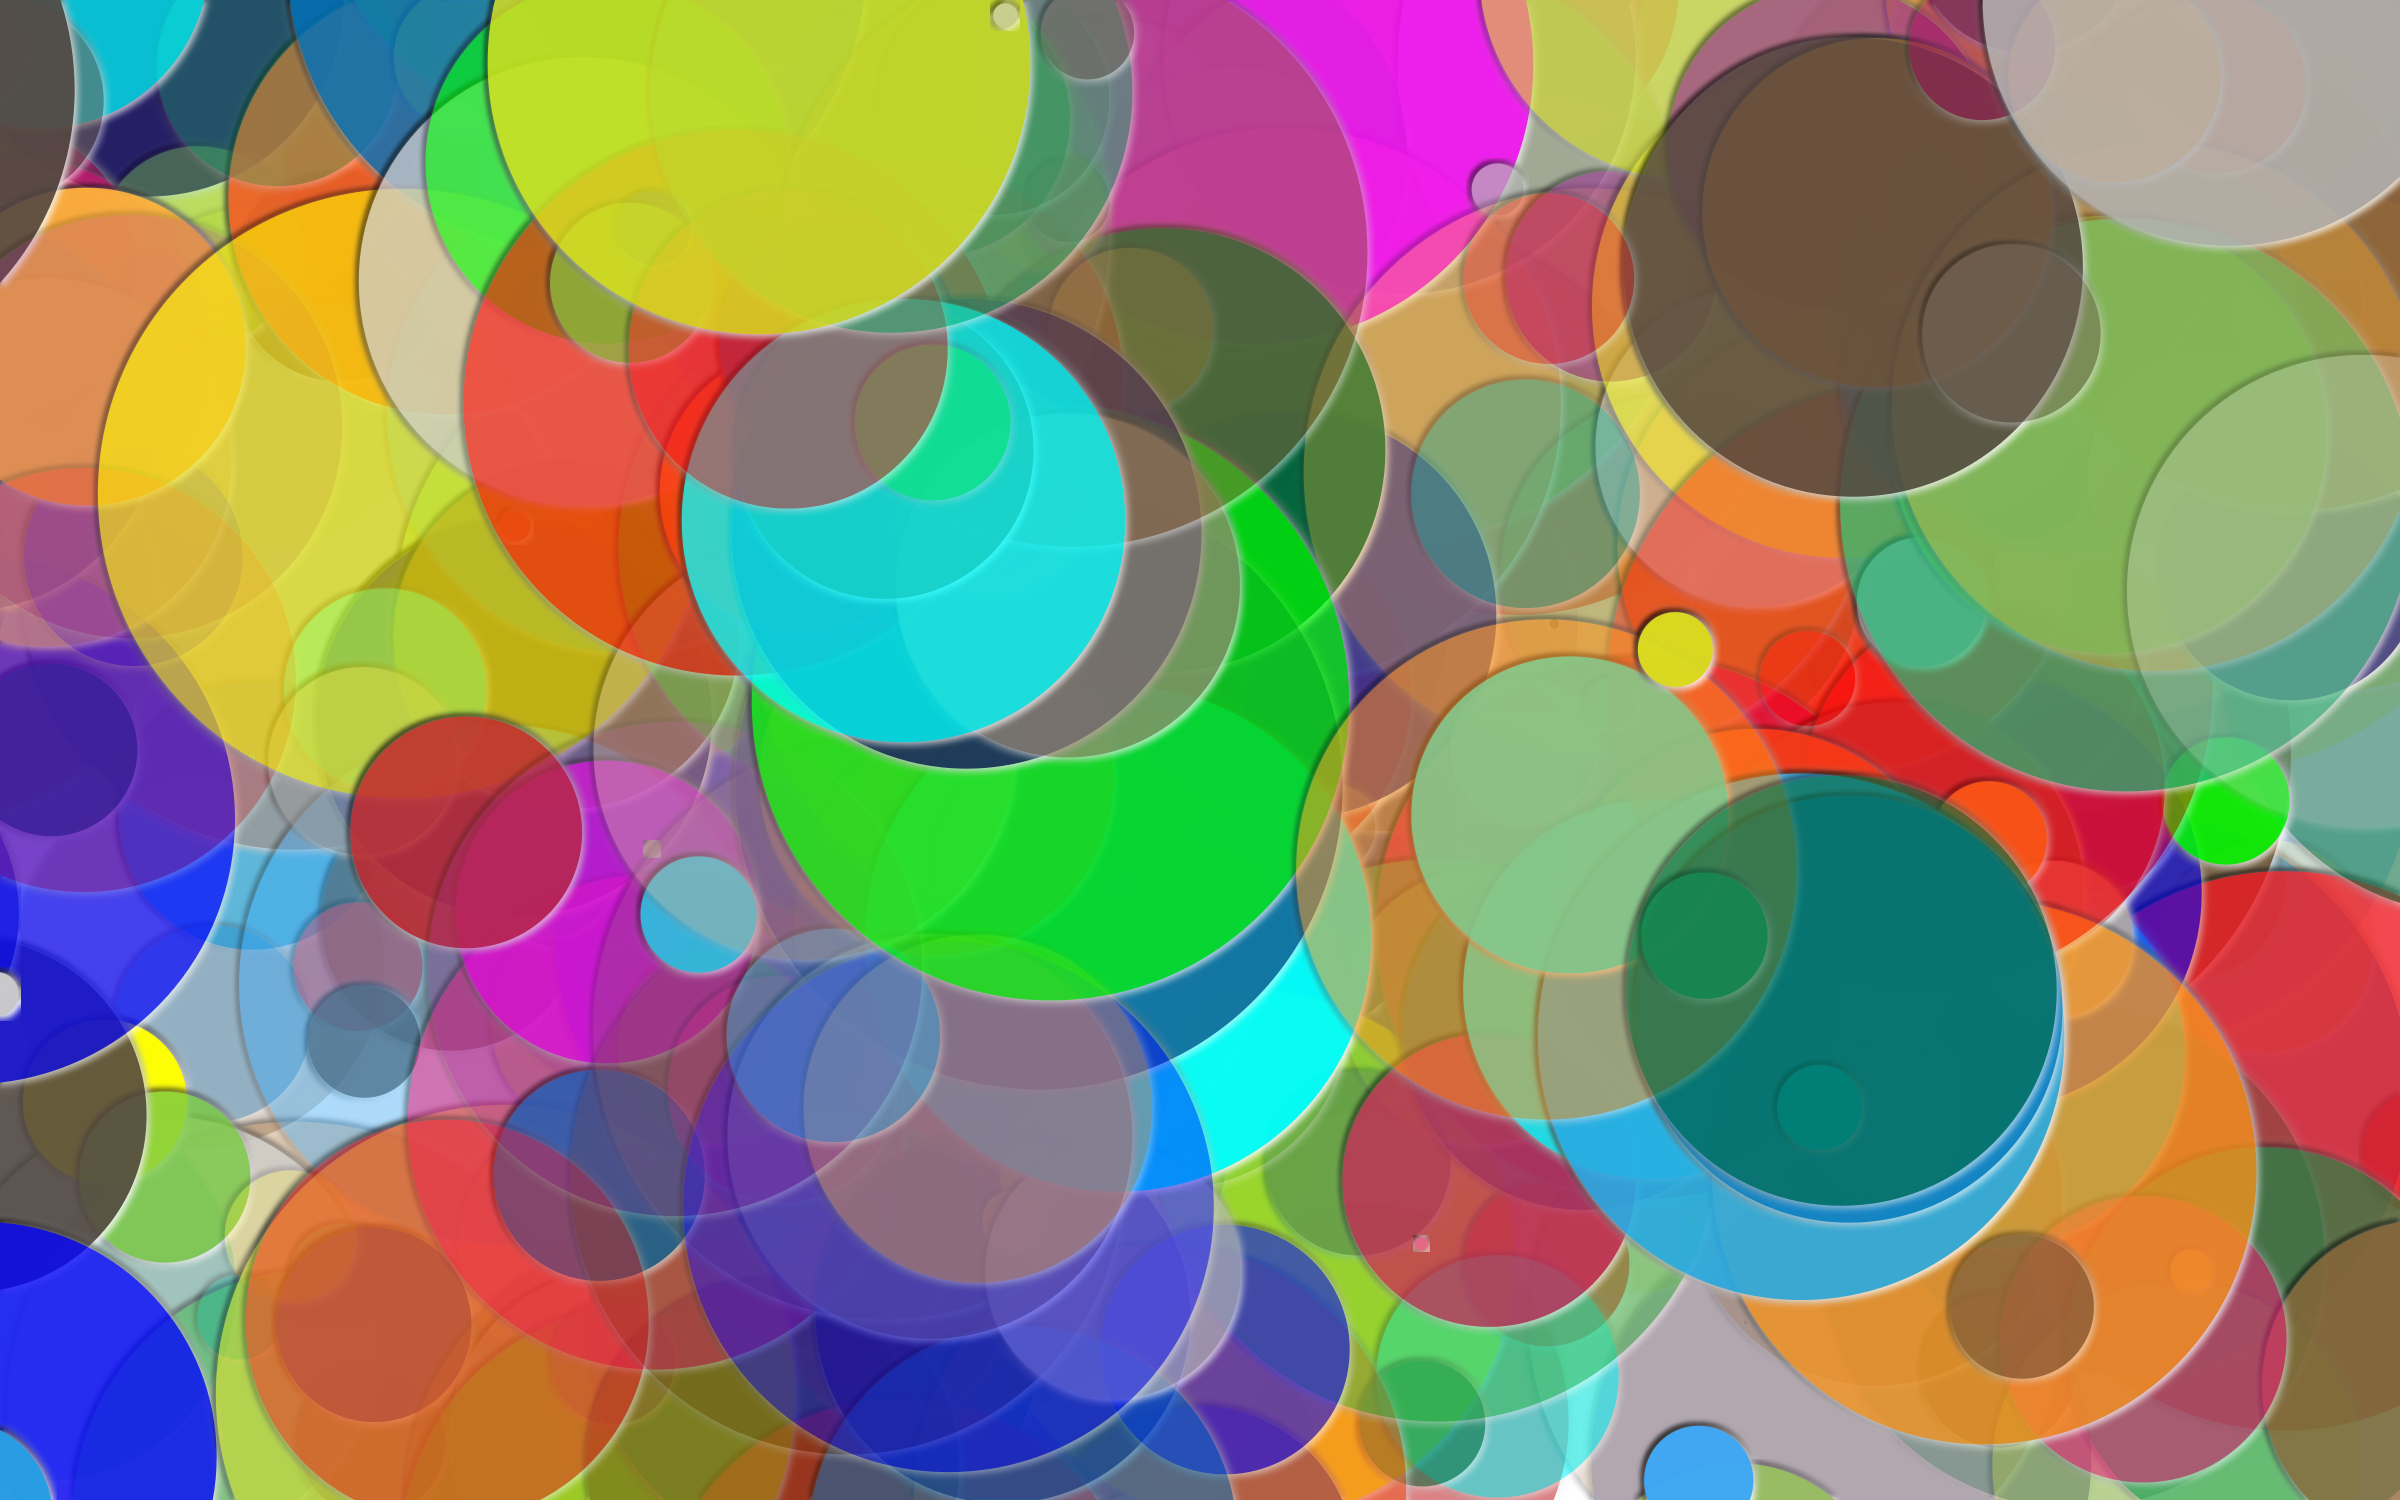 Overlapping Circles Background 3 by GDJ